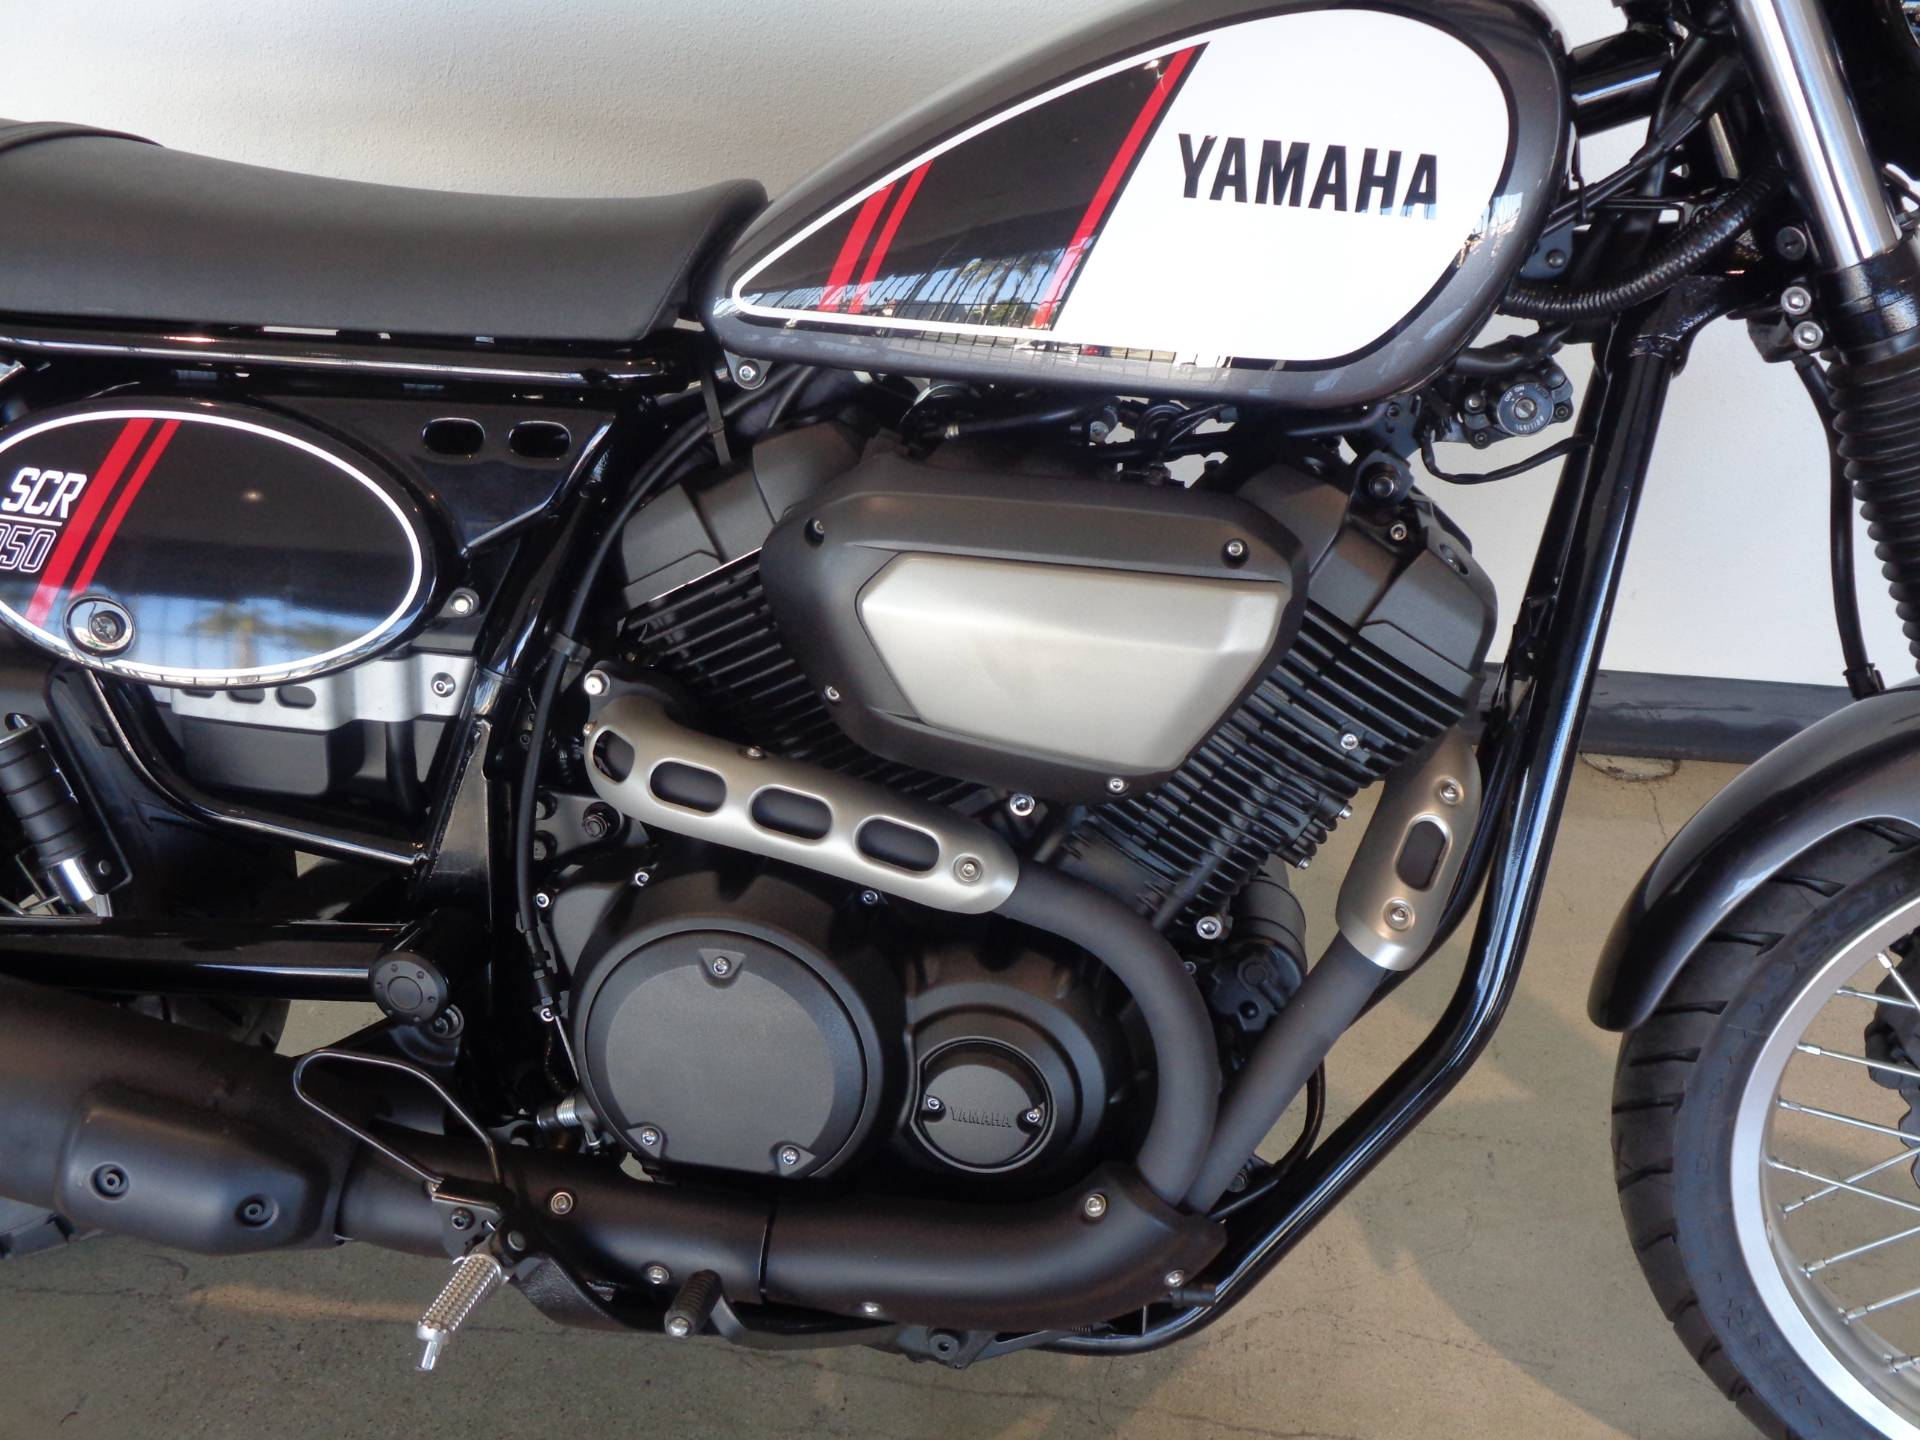 2017 Yamaha SCR950 in Chula Vista, California - Photo 5